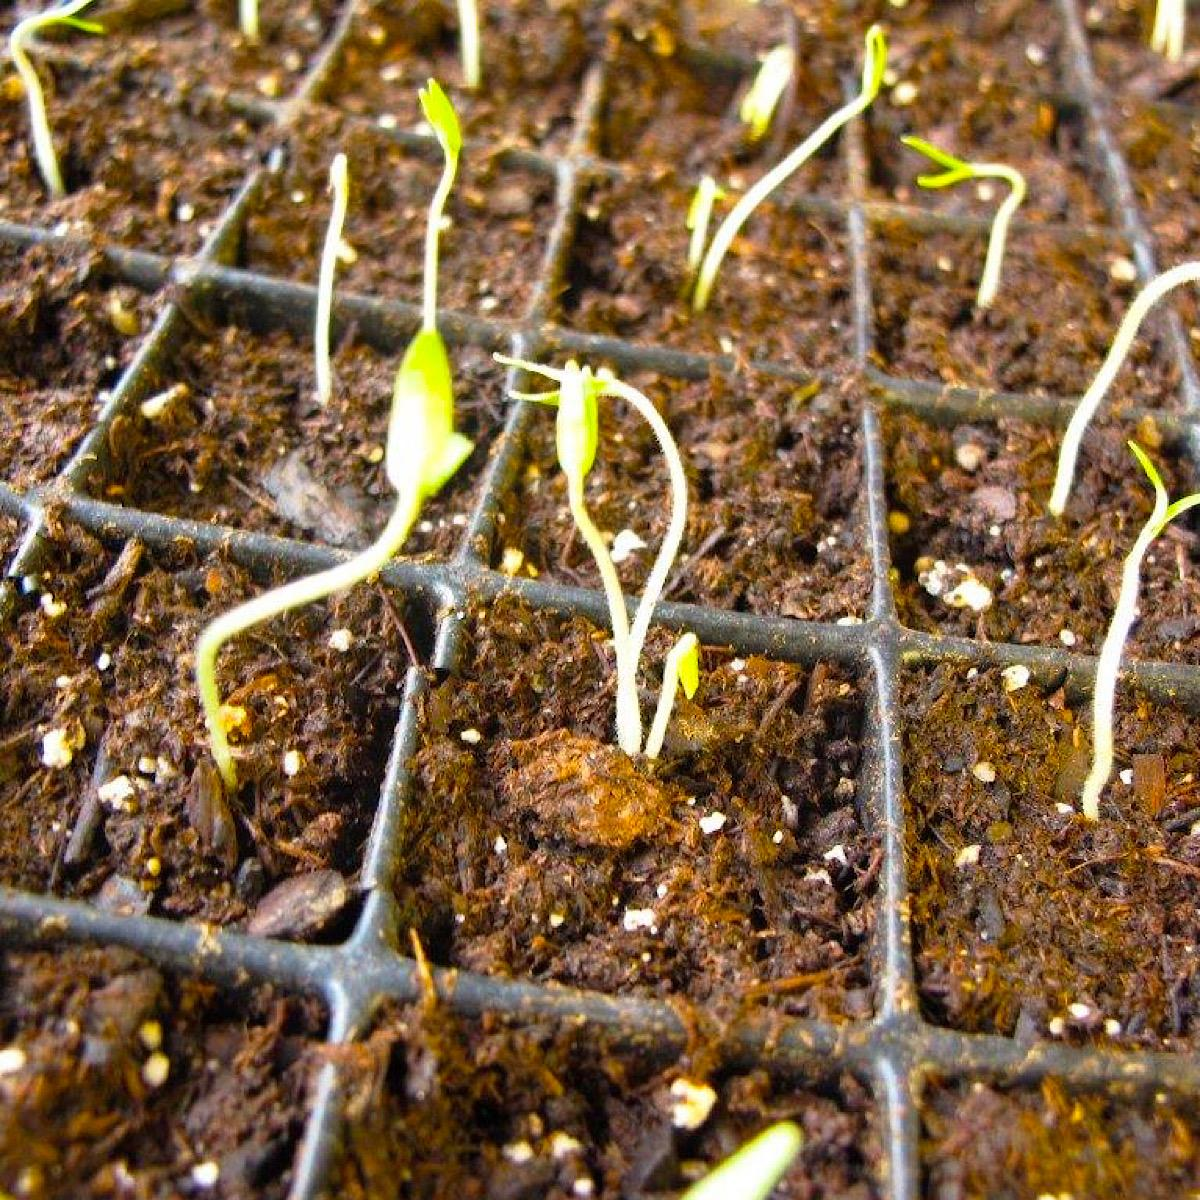 Newly germinated tomato seeds